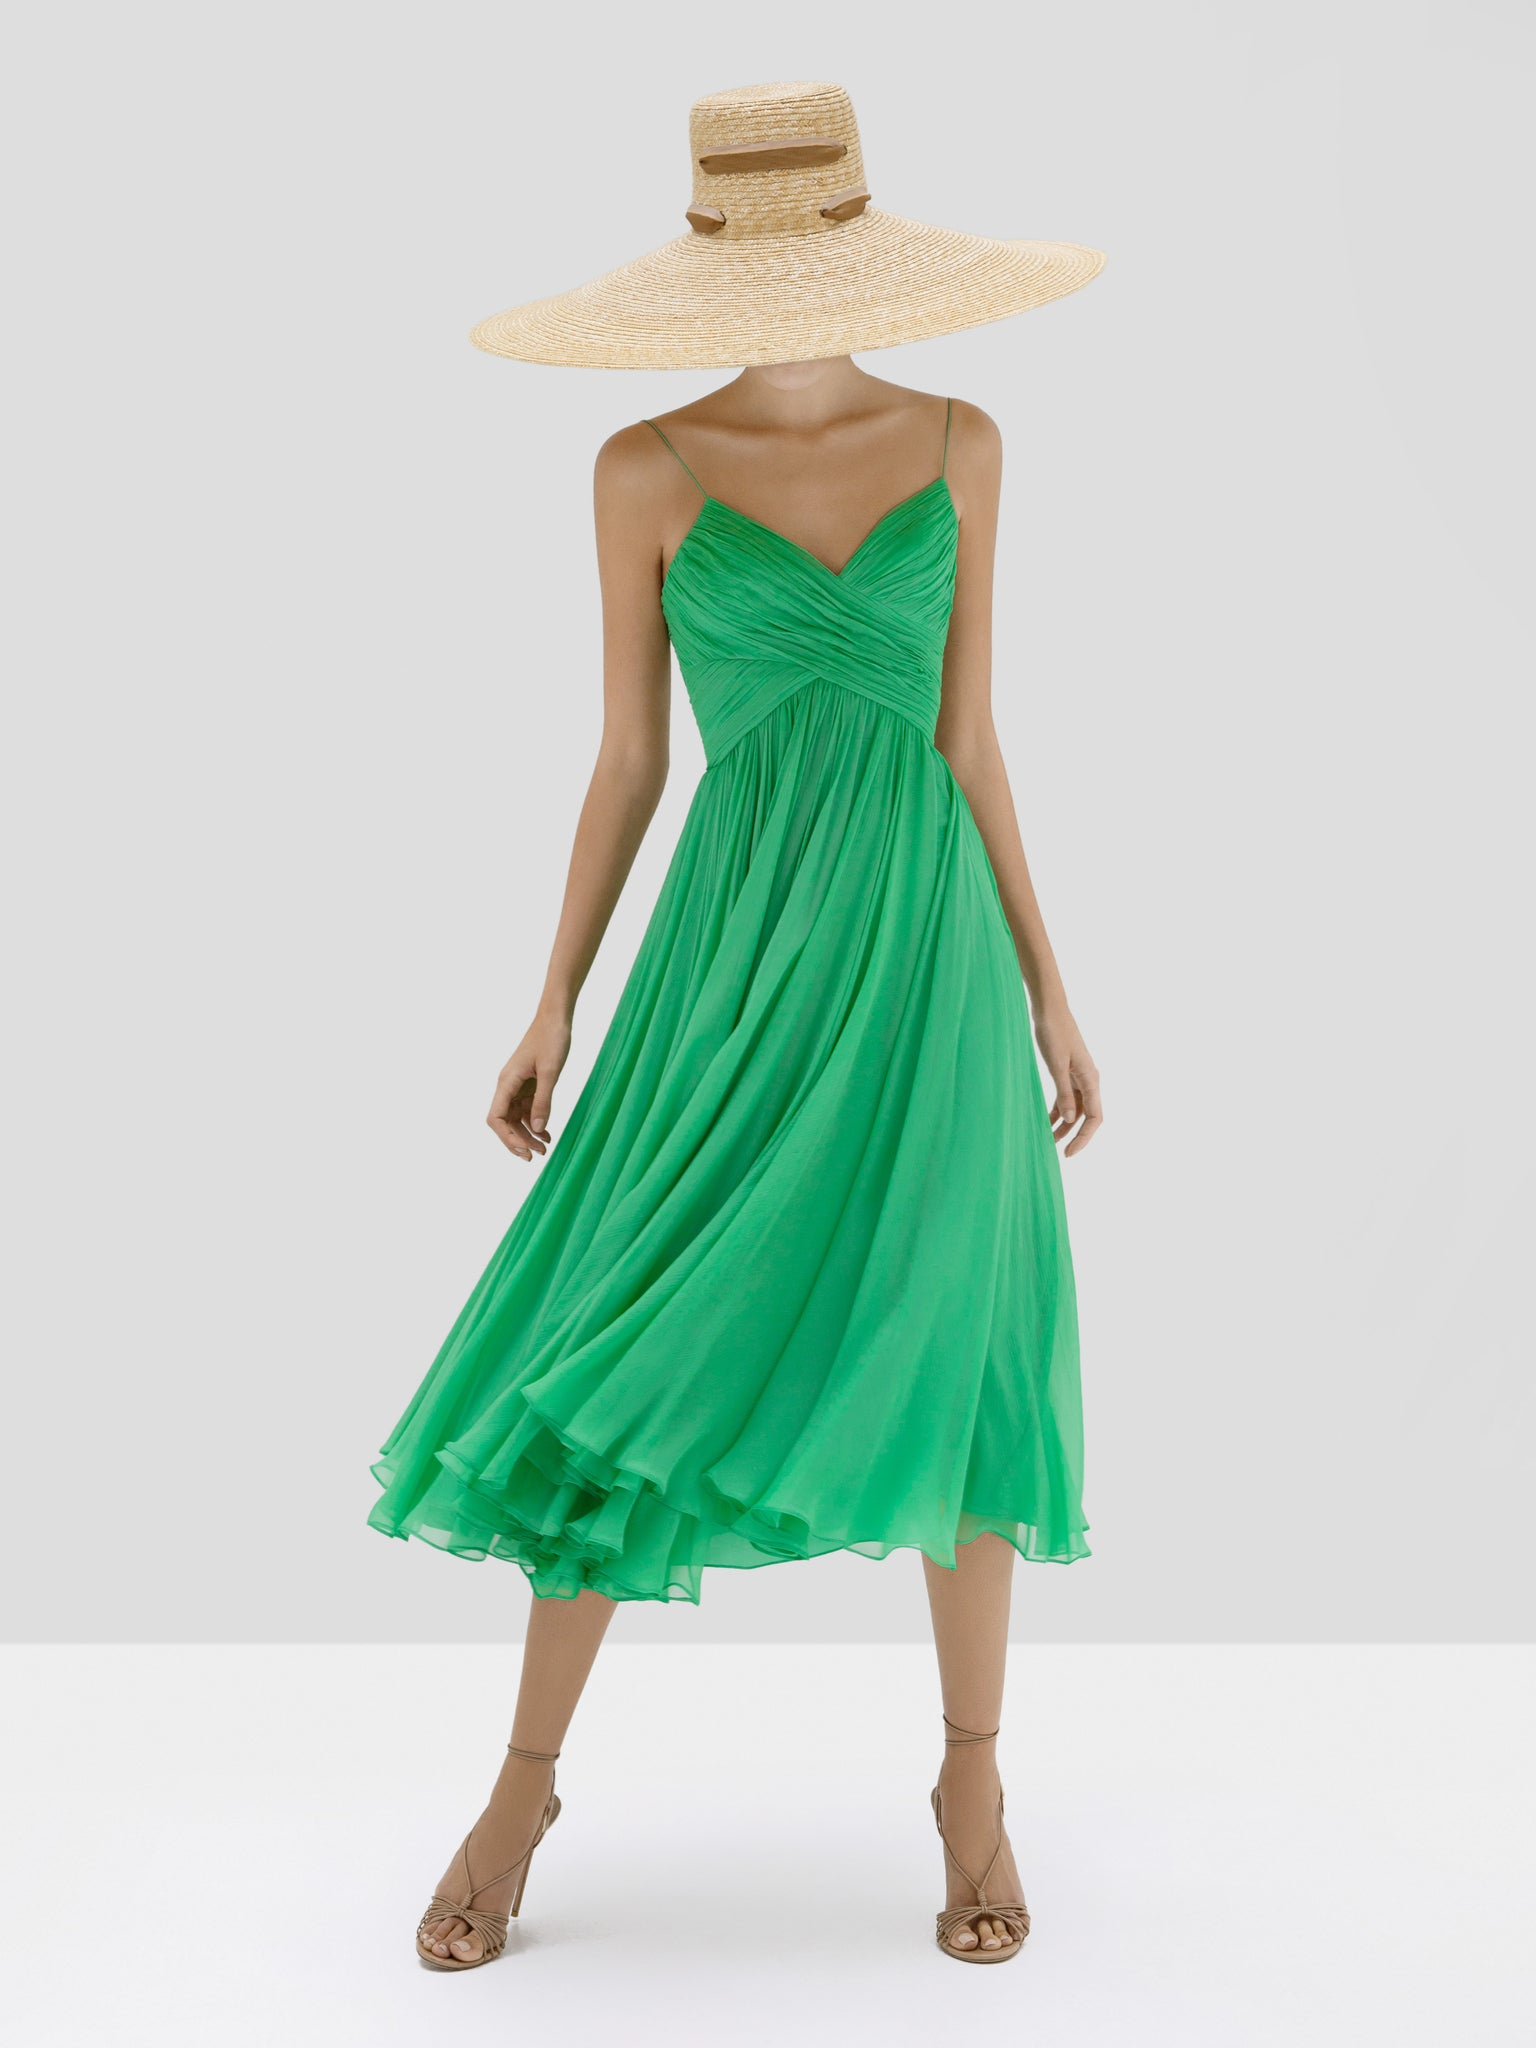 Alexis Sarrana Dress in Green from Spring Summer 2020